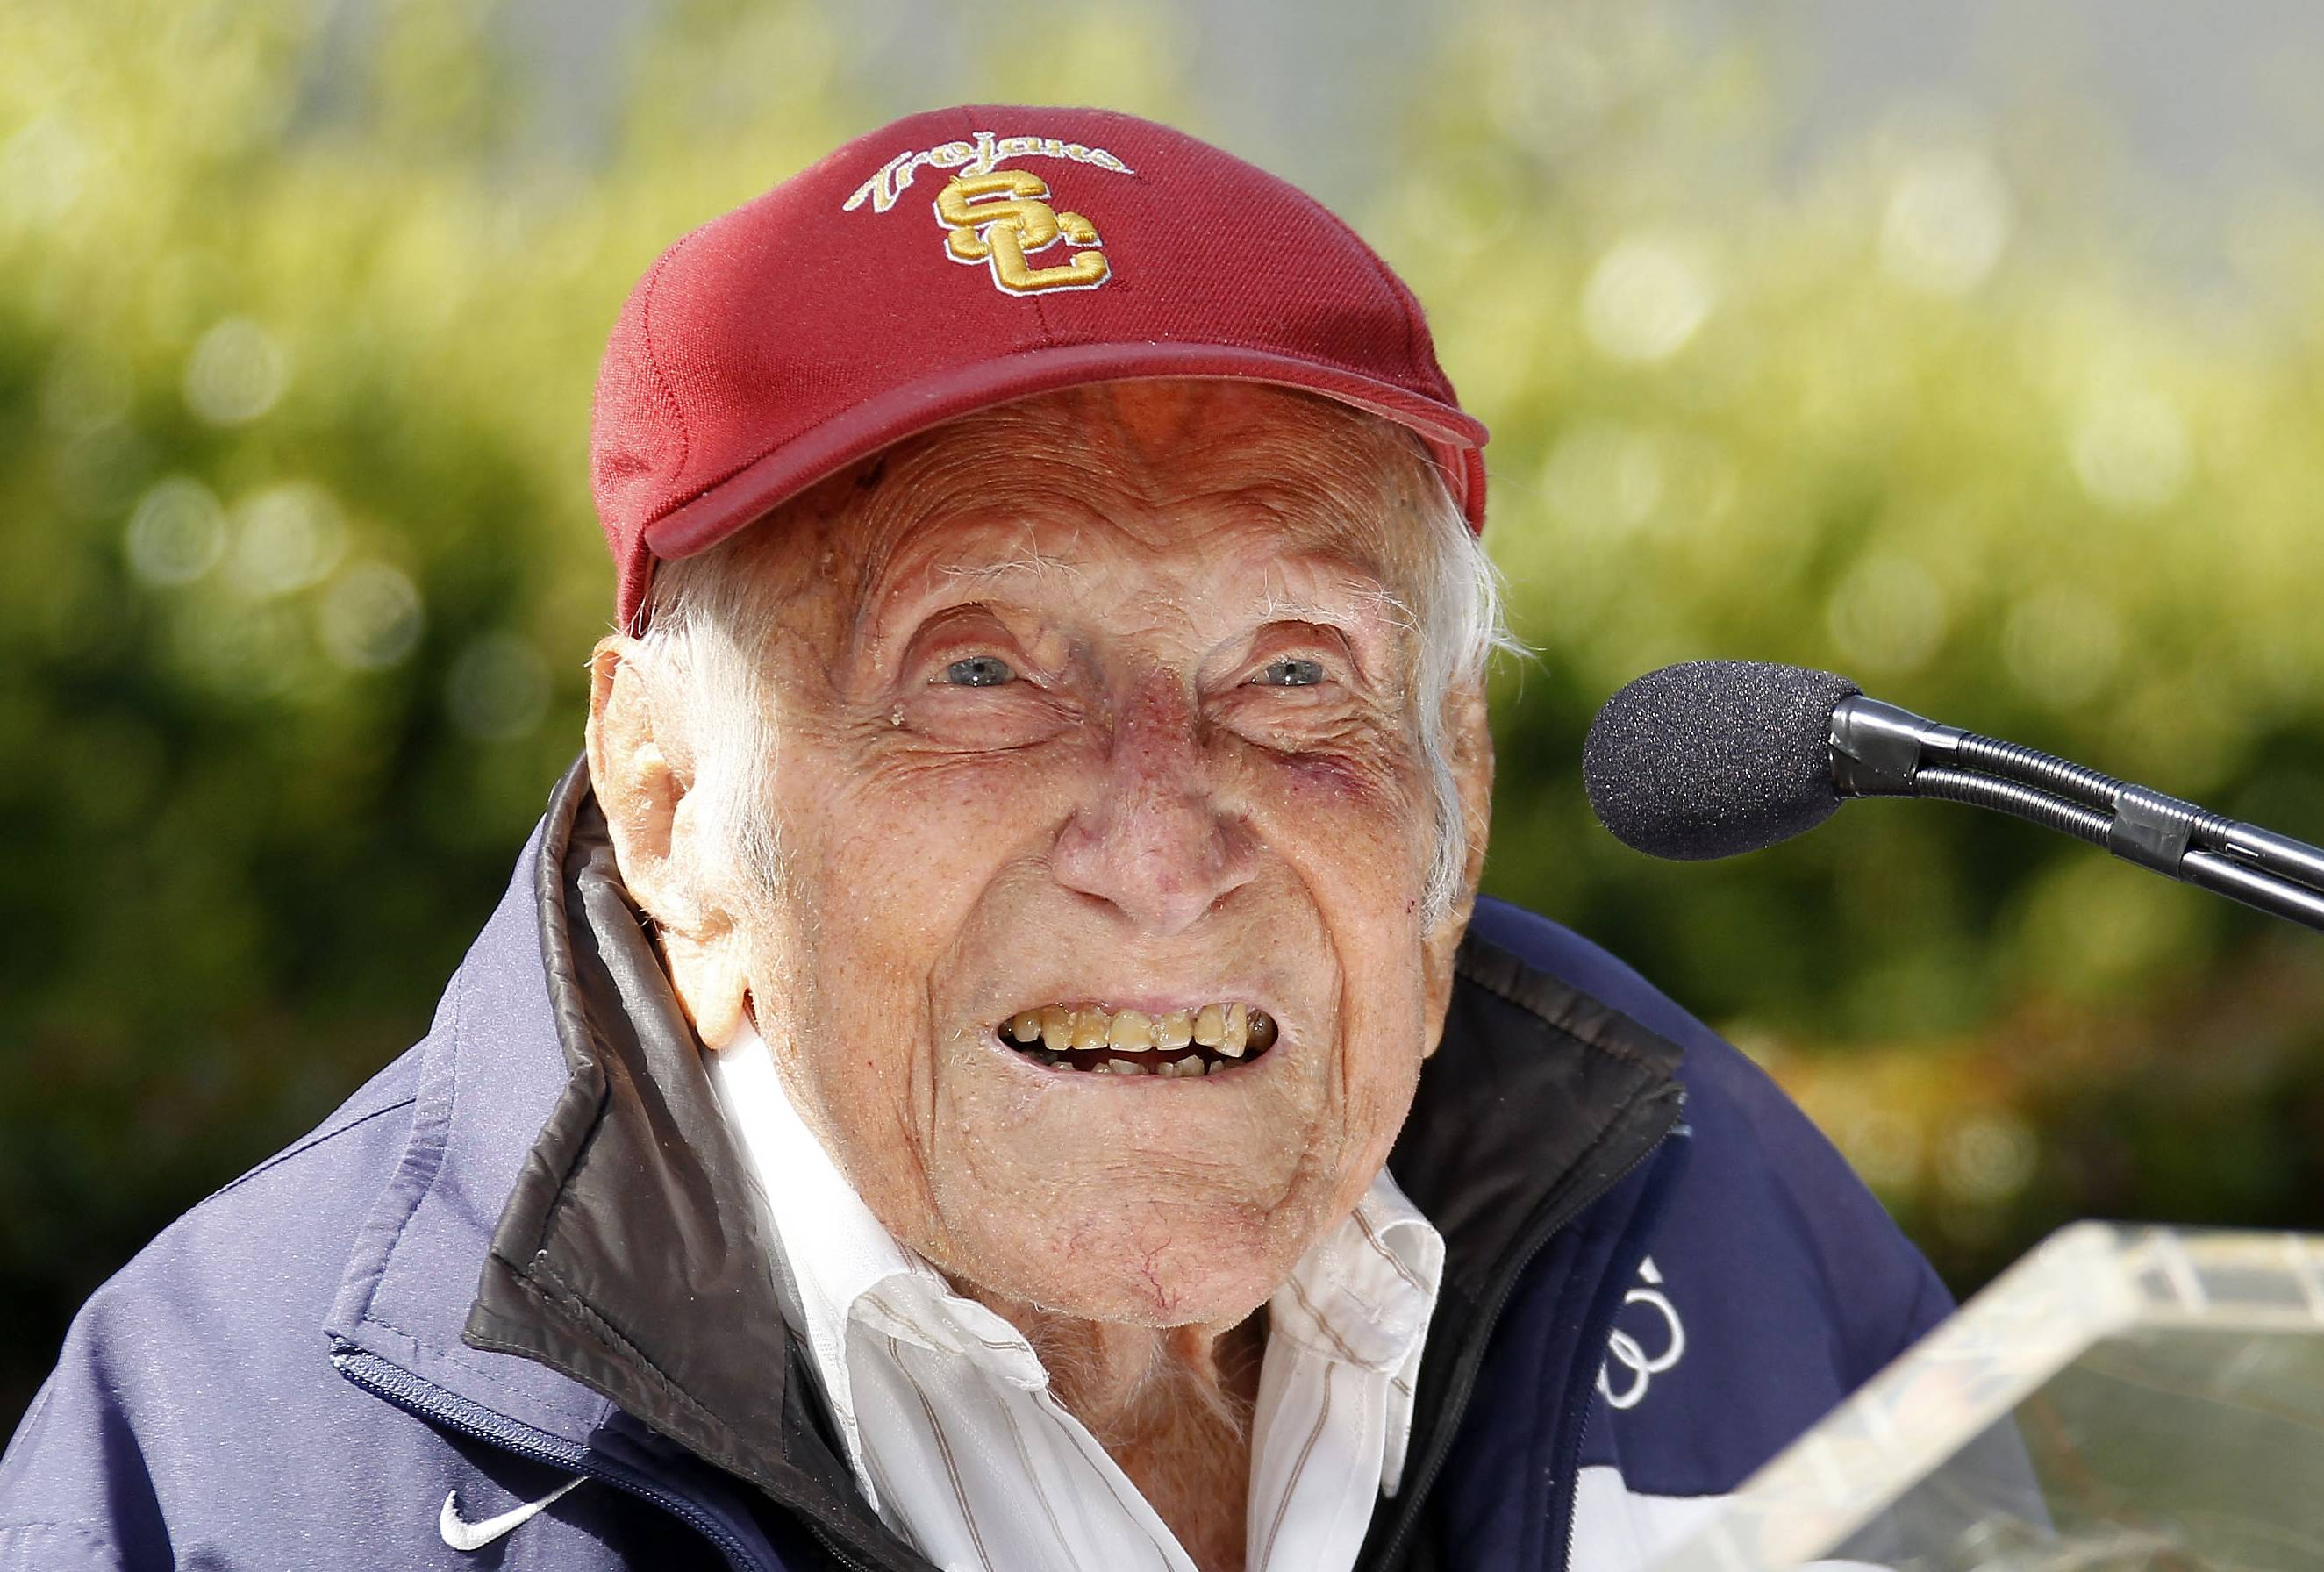 Louis Zamperini, a U.S. Olympic distance runner and World War II veteran who survived 47 days on a raft in the Pacific after his bomber crashed, then endured two years in Japanese prison camps, died Wednesday, July 2, 2014, according to Universal Pictures studio spokesman Michael Moses. He was 97.